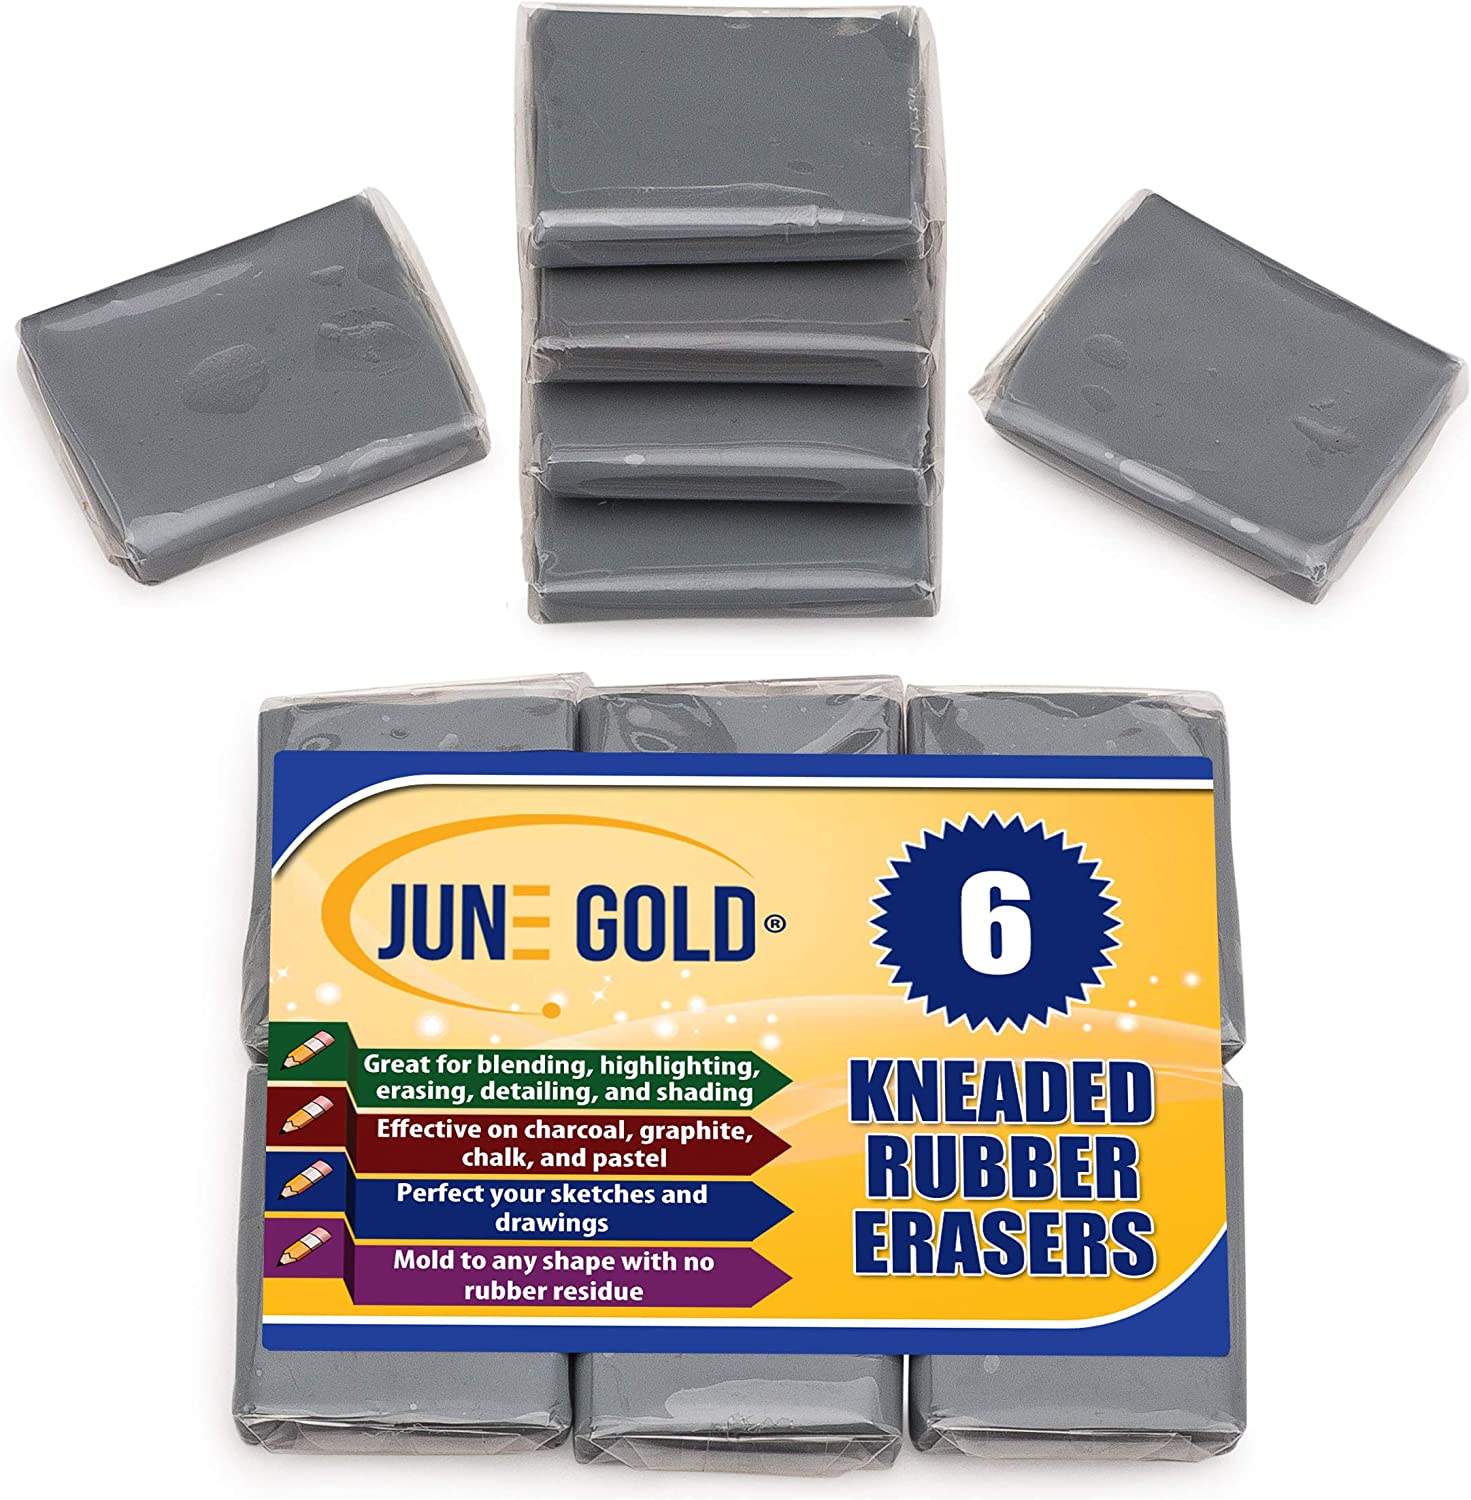 June Gold Kneaded Rubber Erasers (6 Pack) - Blend, Shade, Smooth, Correct, and Brighten Your Sketches and Drawings